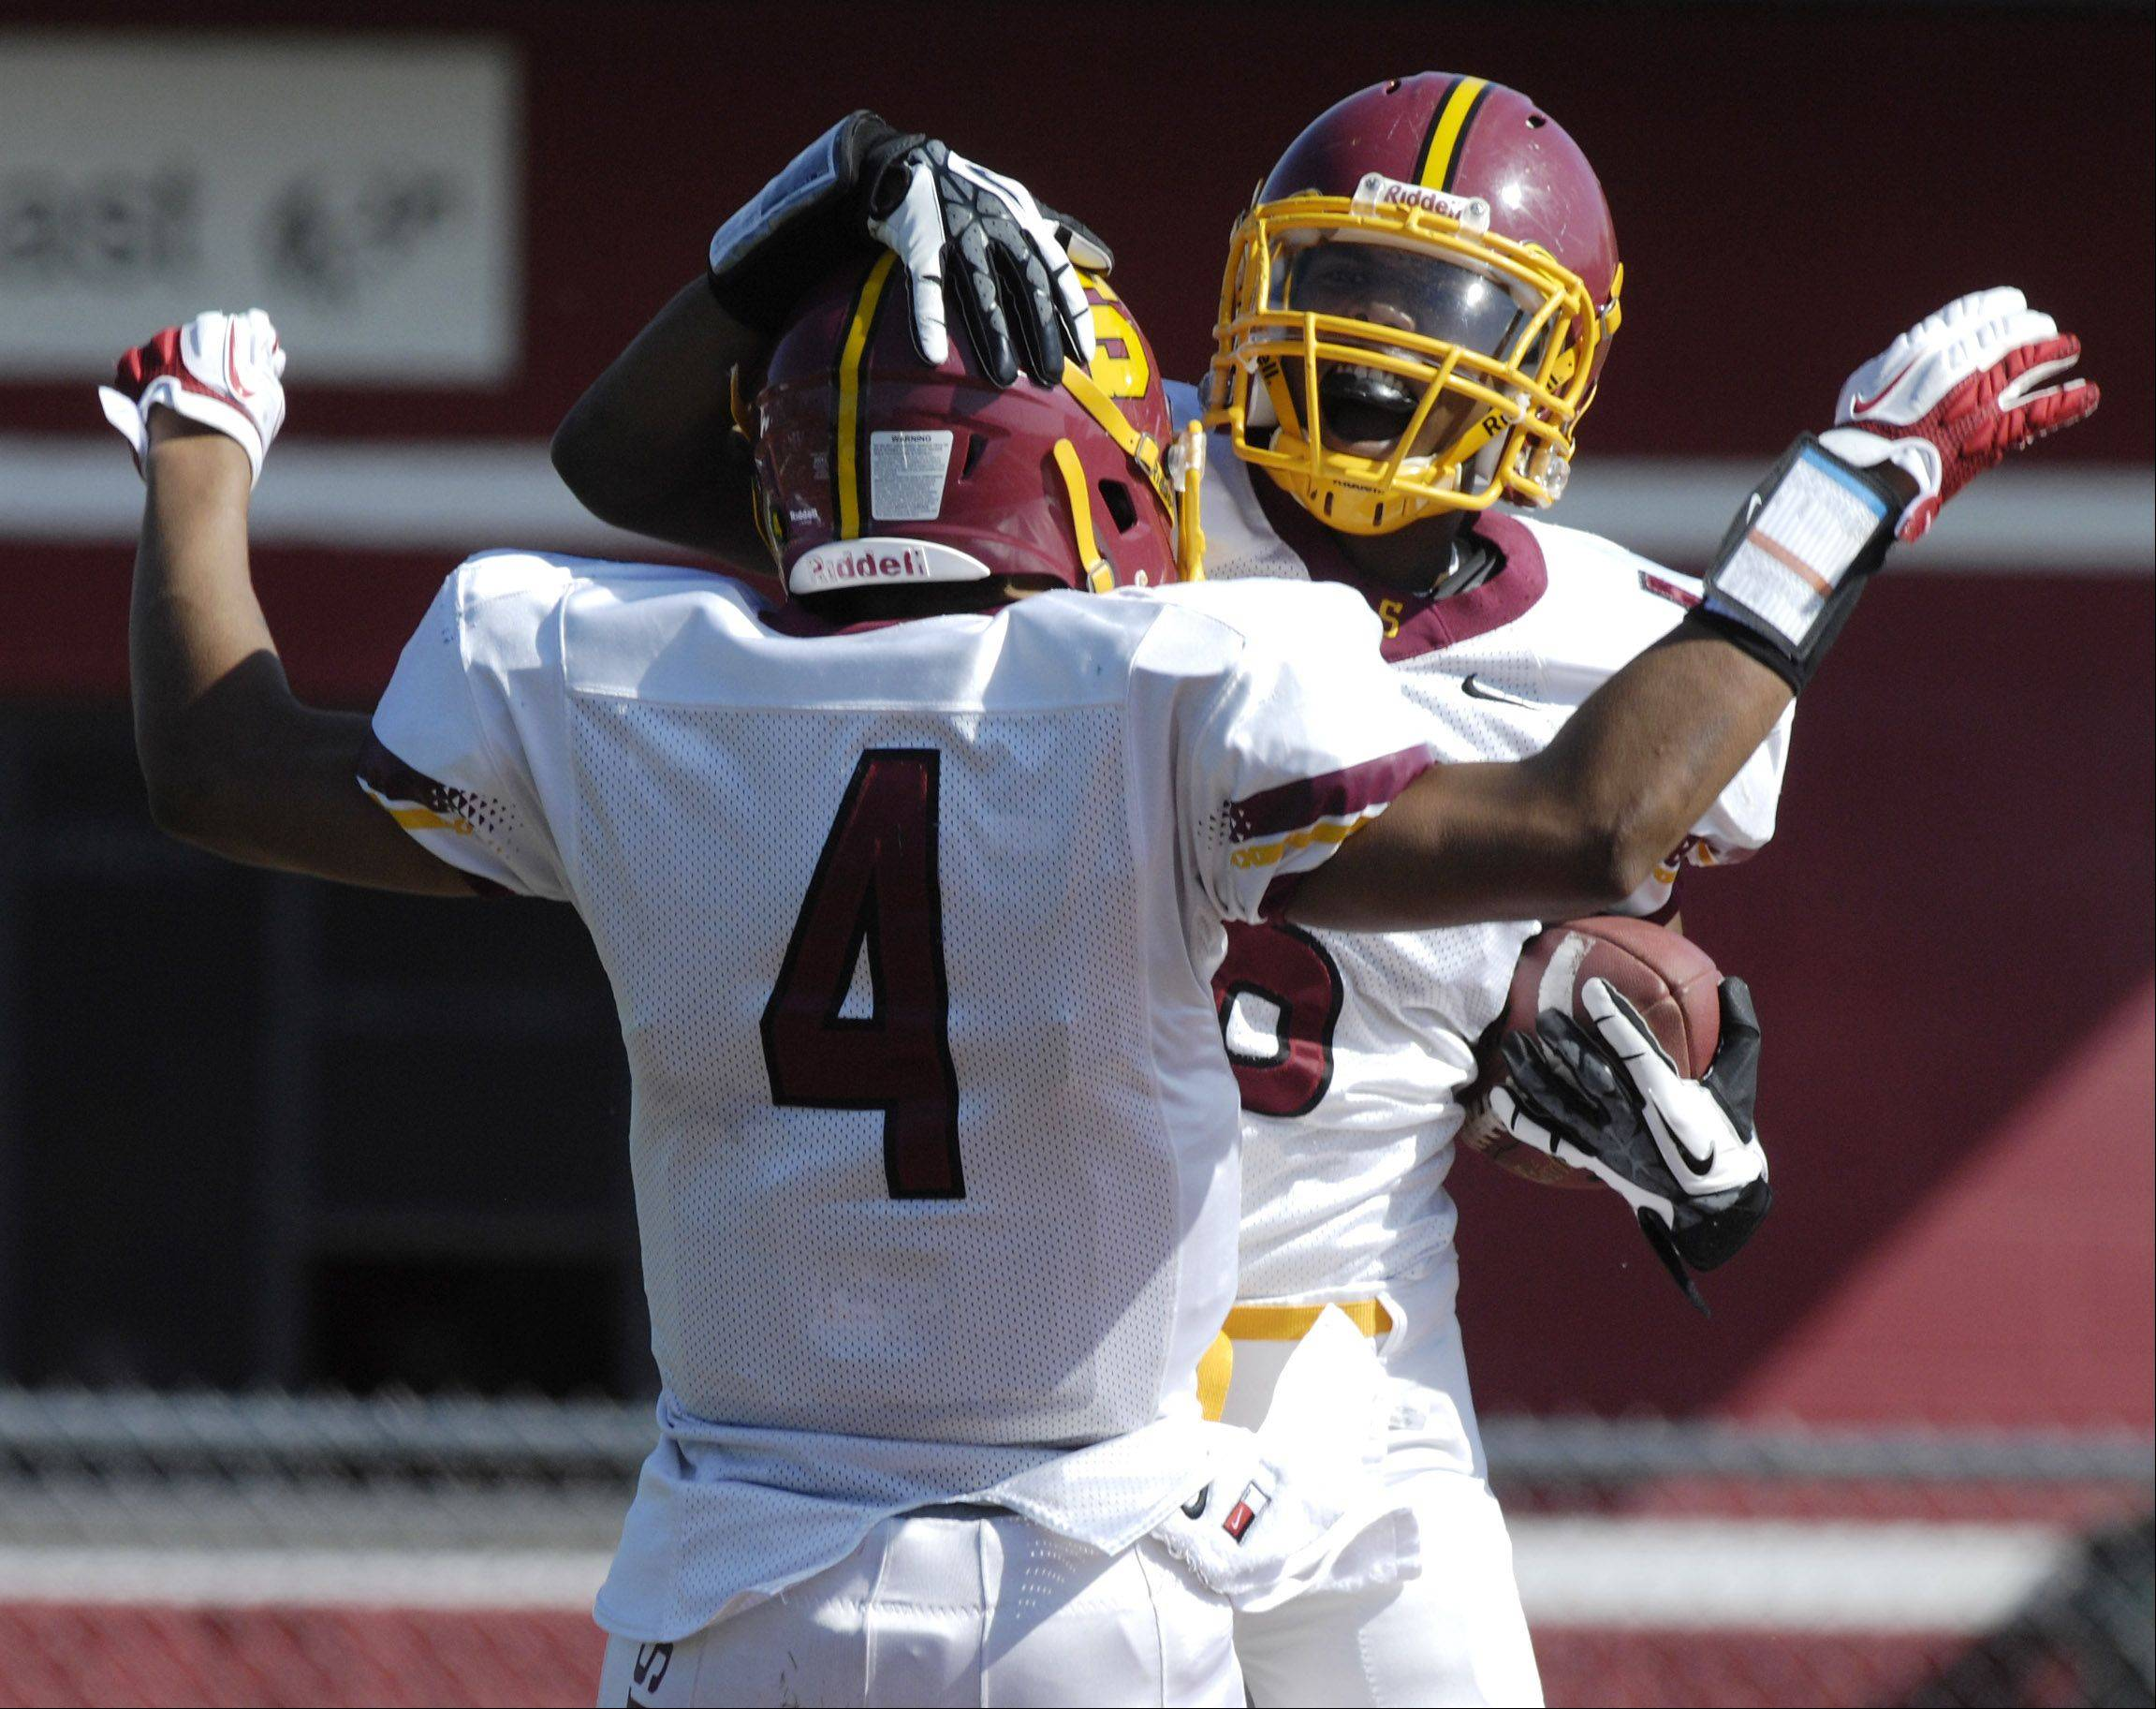 JOE LEWNARD/jlewnard@dailyherald.com Schaumburg's Juwaan Richard, right, celebrates his first-quarter touchdown with teammate Akema Collins during Saturday's game against Barrington.